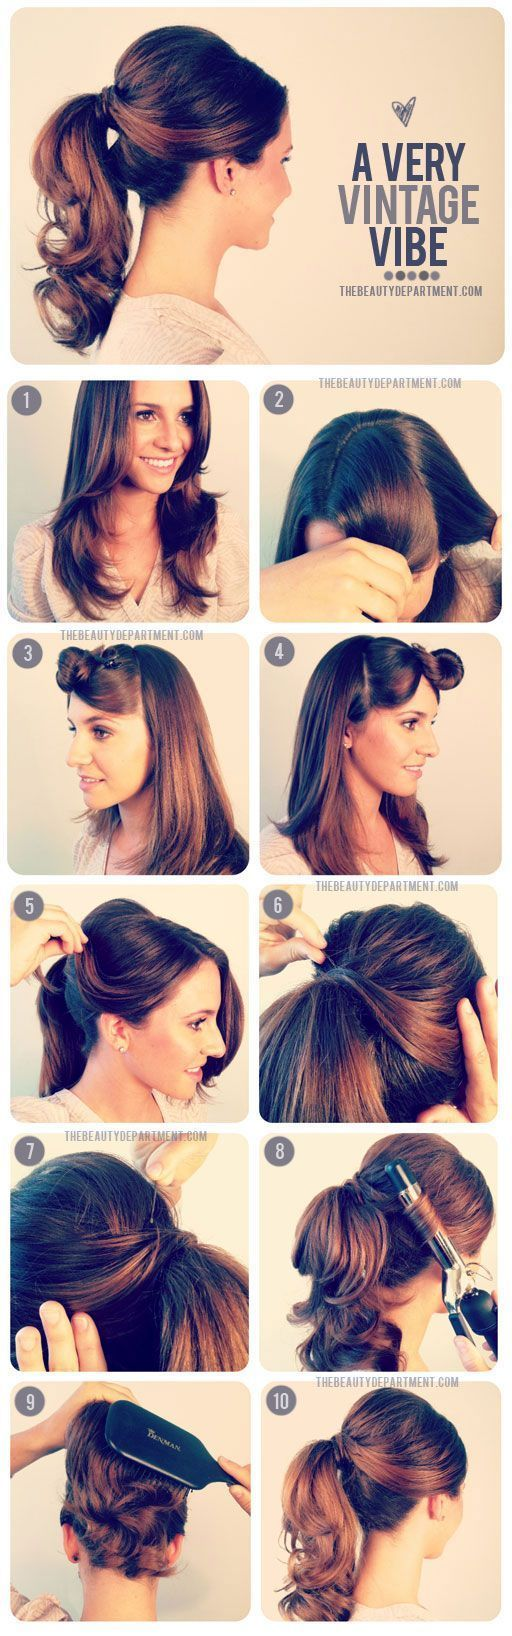 Magnificent 1000 Ideas About Easy Vintage Hairstyles On Pinterest Vintage Short Hairstyles For Black Women Fulllsitofus